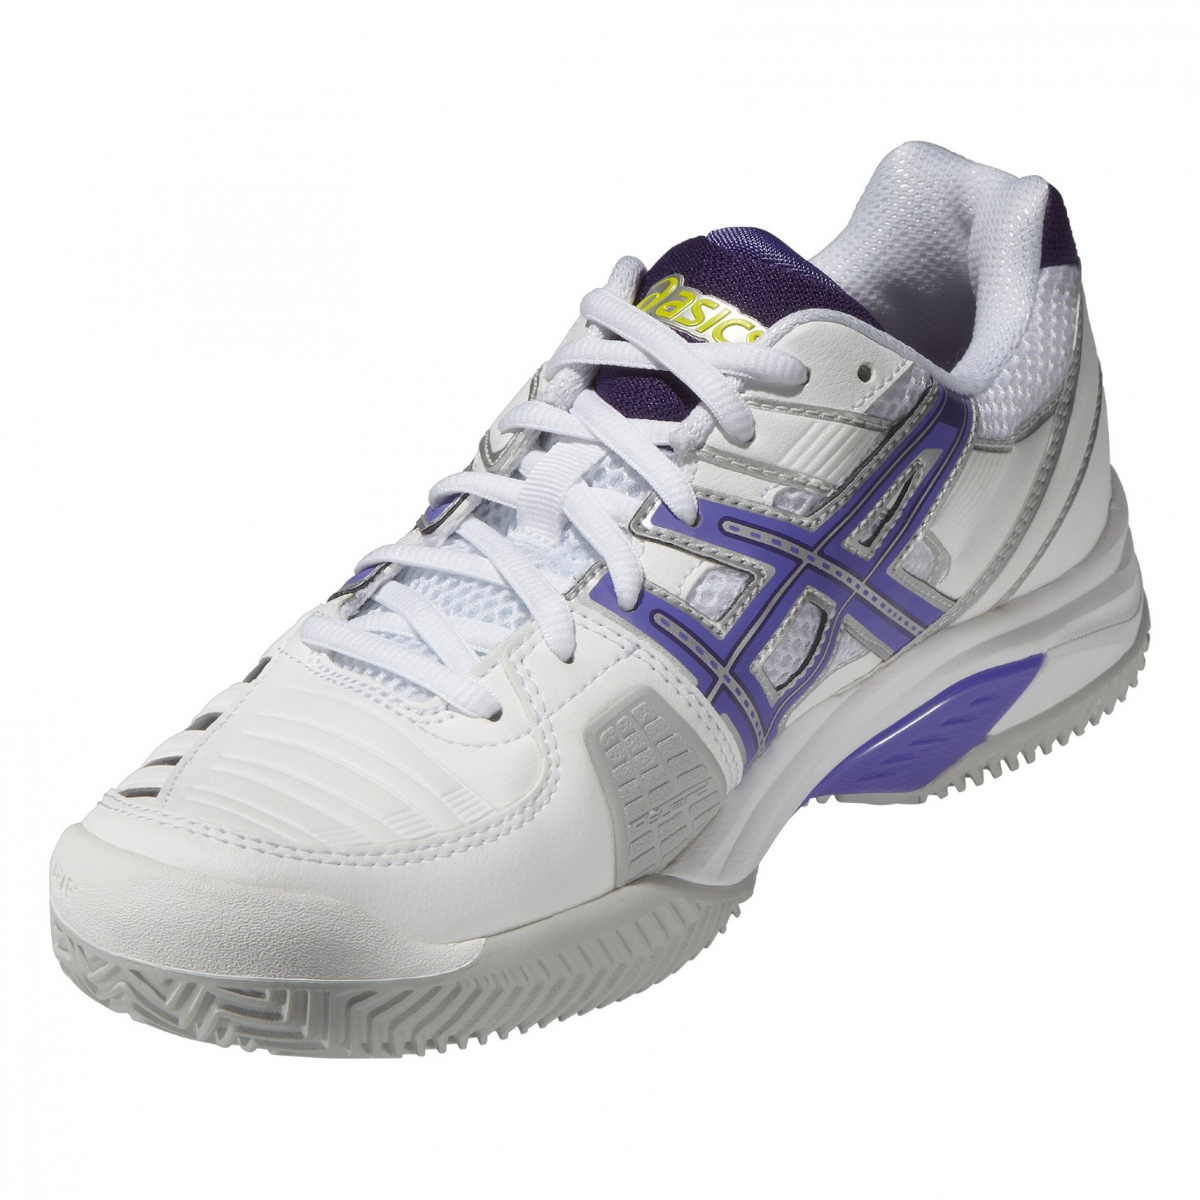 asics gel challenger 9 clay weiss purple tennisschuhe damen online bestellen. Black Bedroom Furniture Sets. Home Design Ideas